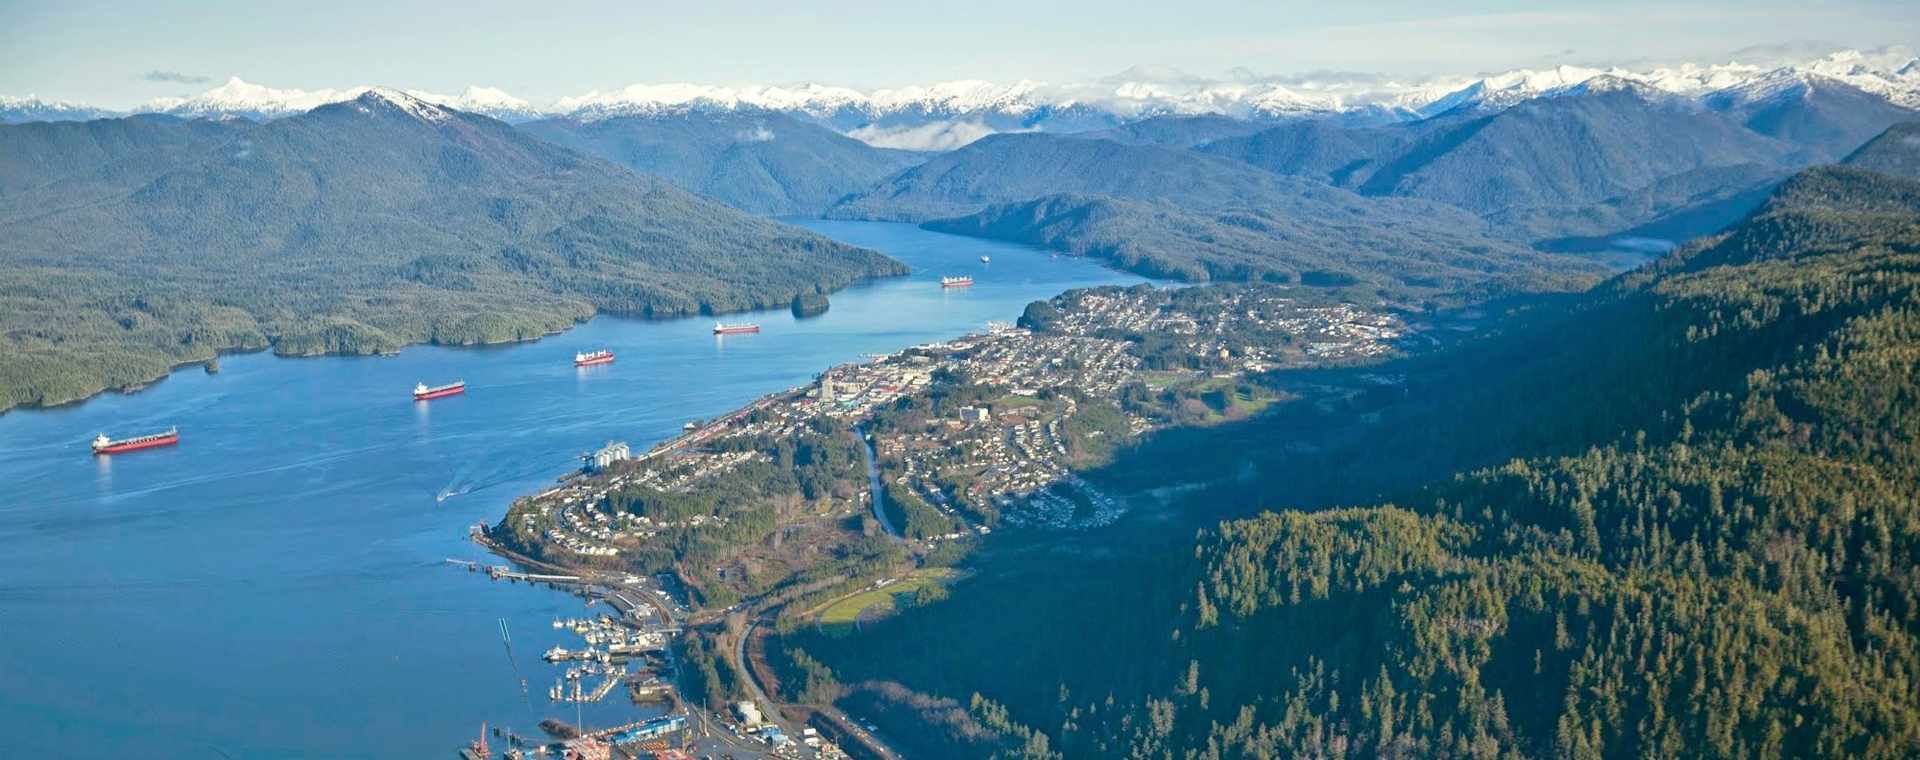 Prince Rupert, Kitimat, Hazelton, New Hazelton, North Coast, Port Clemens, Port Edward, Queen Charlotte, Smithers, Stewart, Terrace, Houston, Cassiar, Dease Lake, Iskut, Bell II, Kitsault, Nisga'a, Masset, Ocean Hall, Namu, Anahim Lake, Gingolx, Kitimat Villiage, Rosswood, Kuldo